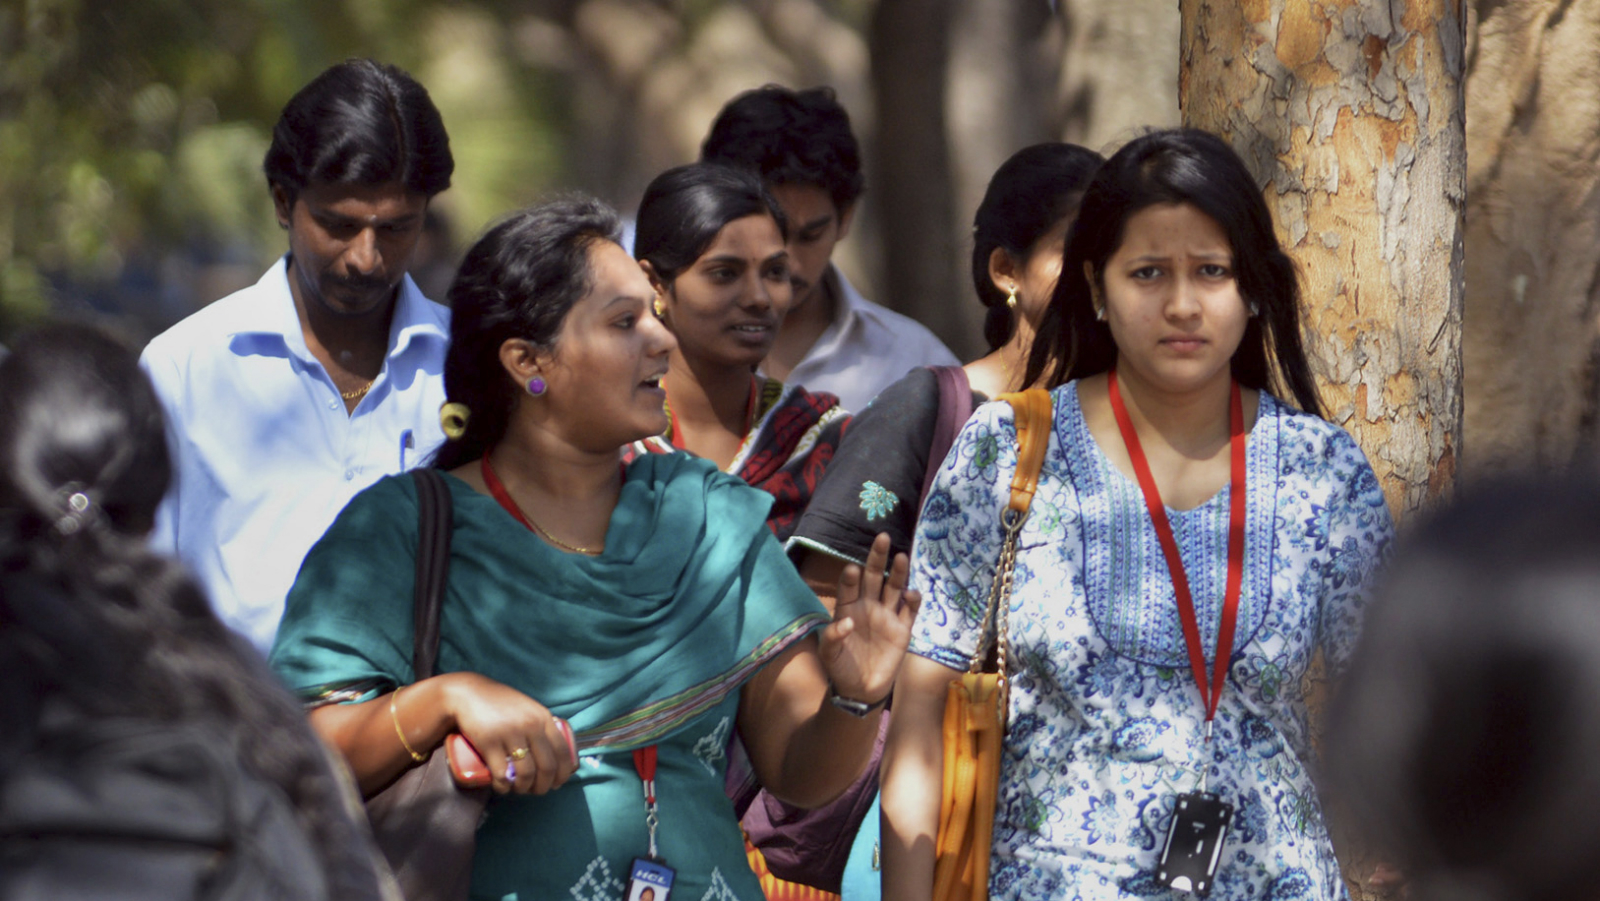 In this Wednesday, March 26, 2014 photo, young Indian employees of Infosys Technologies walk outside the company's headquarters at Electronic City in Bangalore, India. As the world's largest democracy of 1.2 billion people, including 814 million voters, launches a marathon six-week national election contest, all eyes are on India's enormous population of ambitious, tech-savvy and politically engaged youths. Nowhere is the high-tech transition more clear than amid the bright cafes and technology companies of Bangalore, seen as the economy's beating heart and brain trust with its large number of scientists, engineers and corporate professionals drawn from India's brightest youths. With 63 percent of its population under 25, Bangalore is one of India's youngest cities.